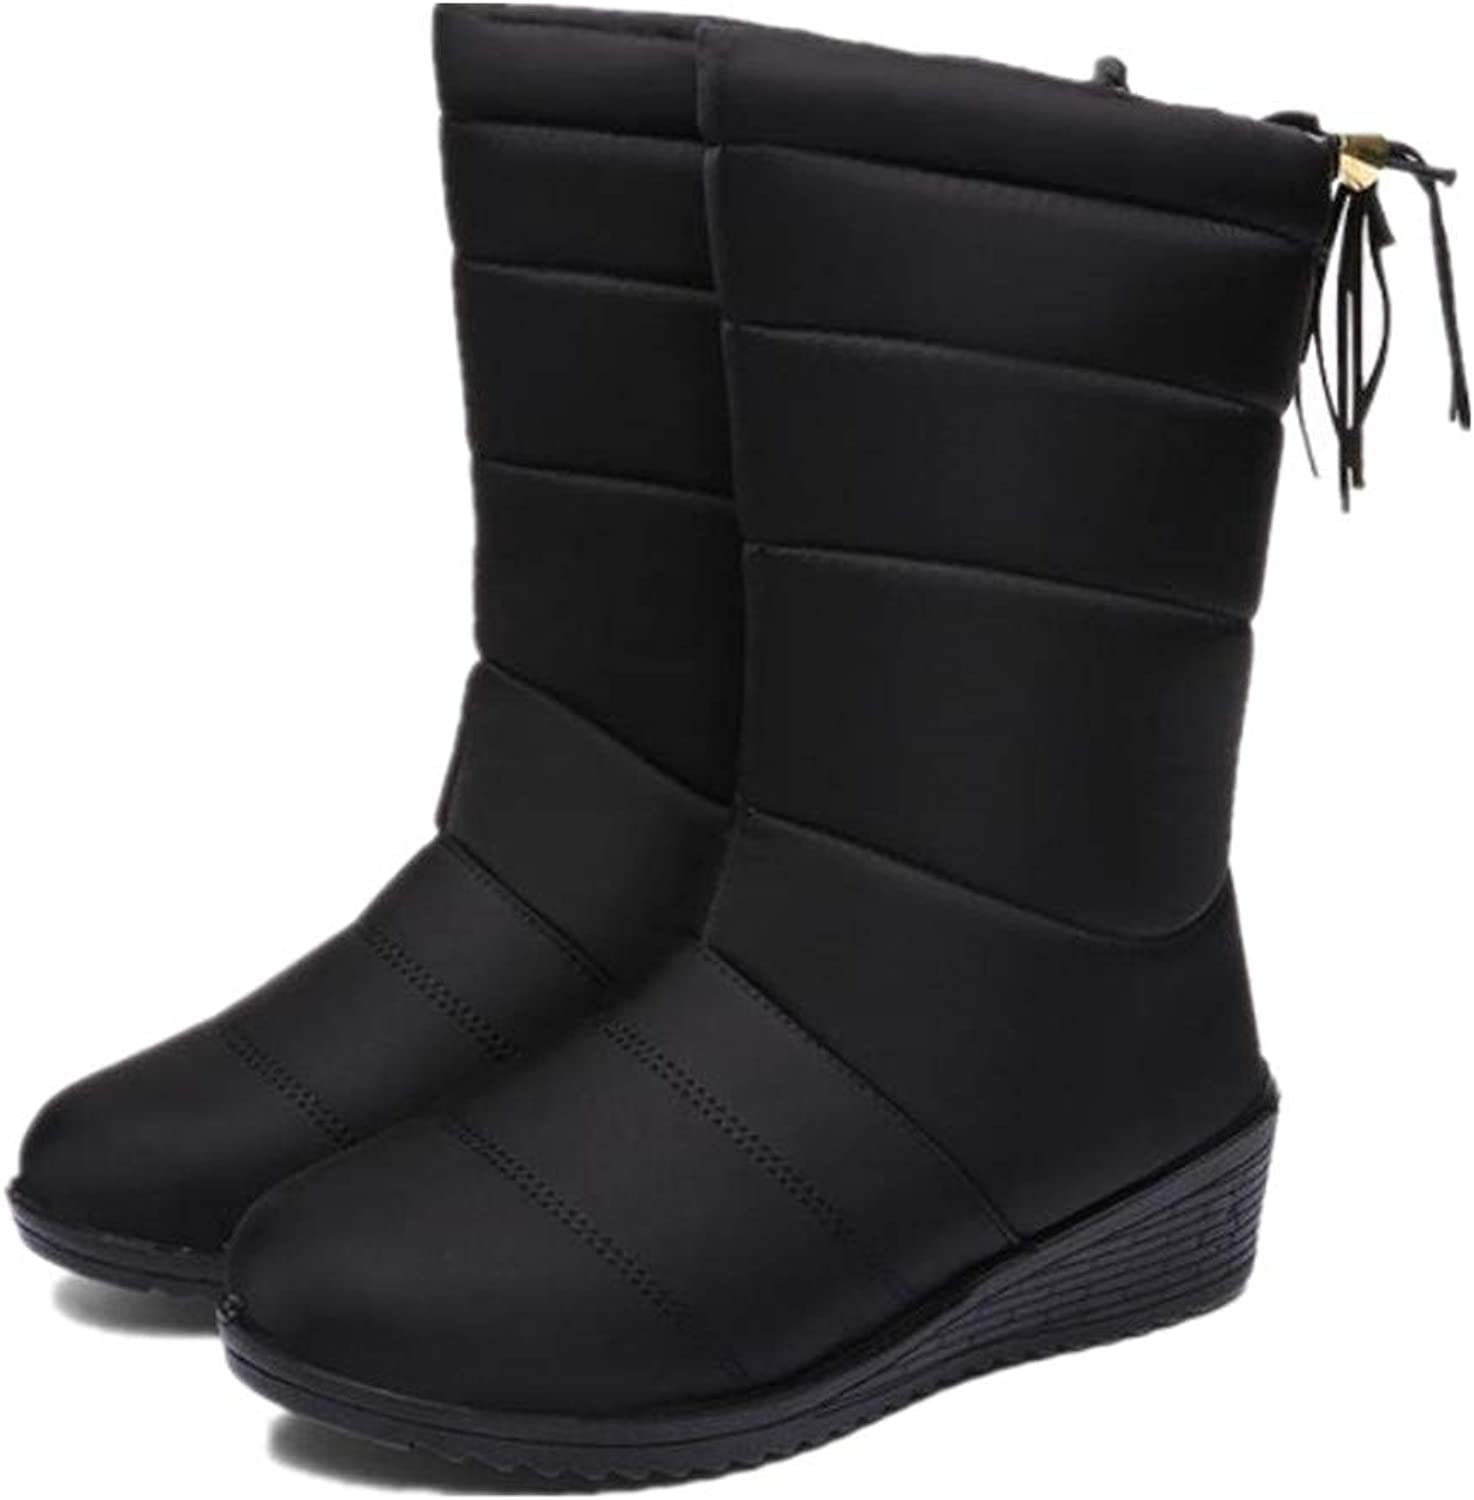 Super color Women's Snow Boots Winter Warm Ankle Booties Fur Lined Outdoor Anti-Slip shoes